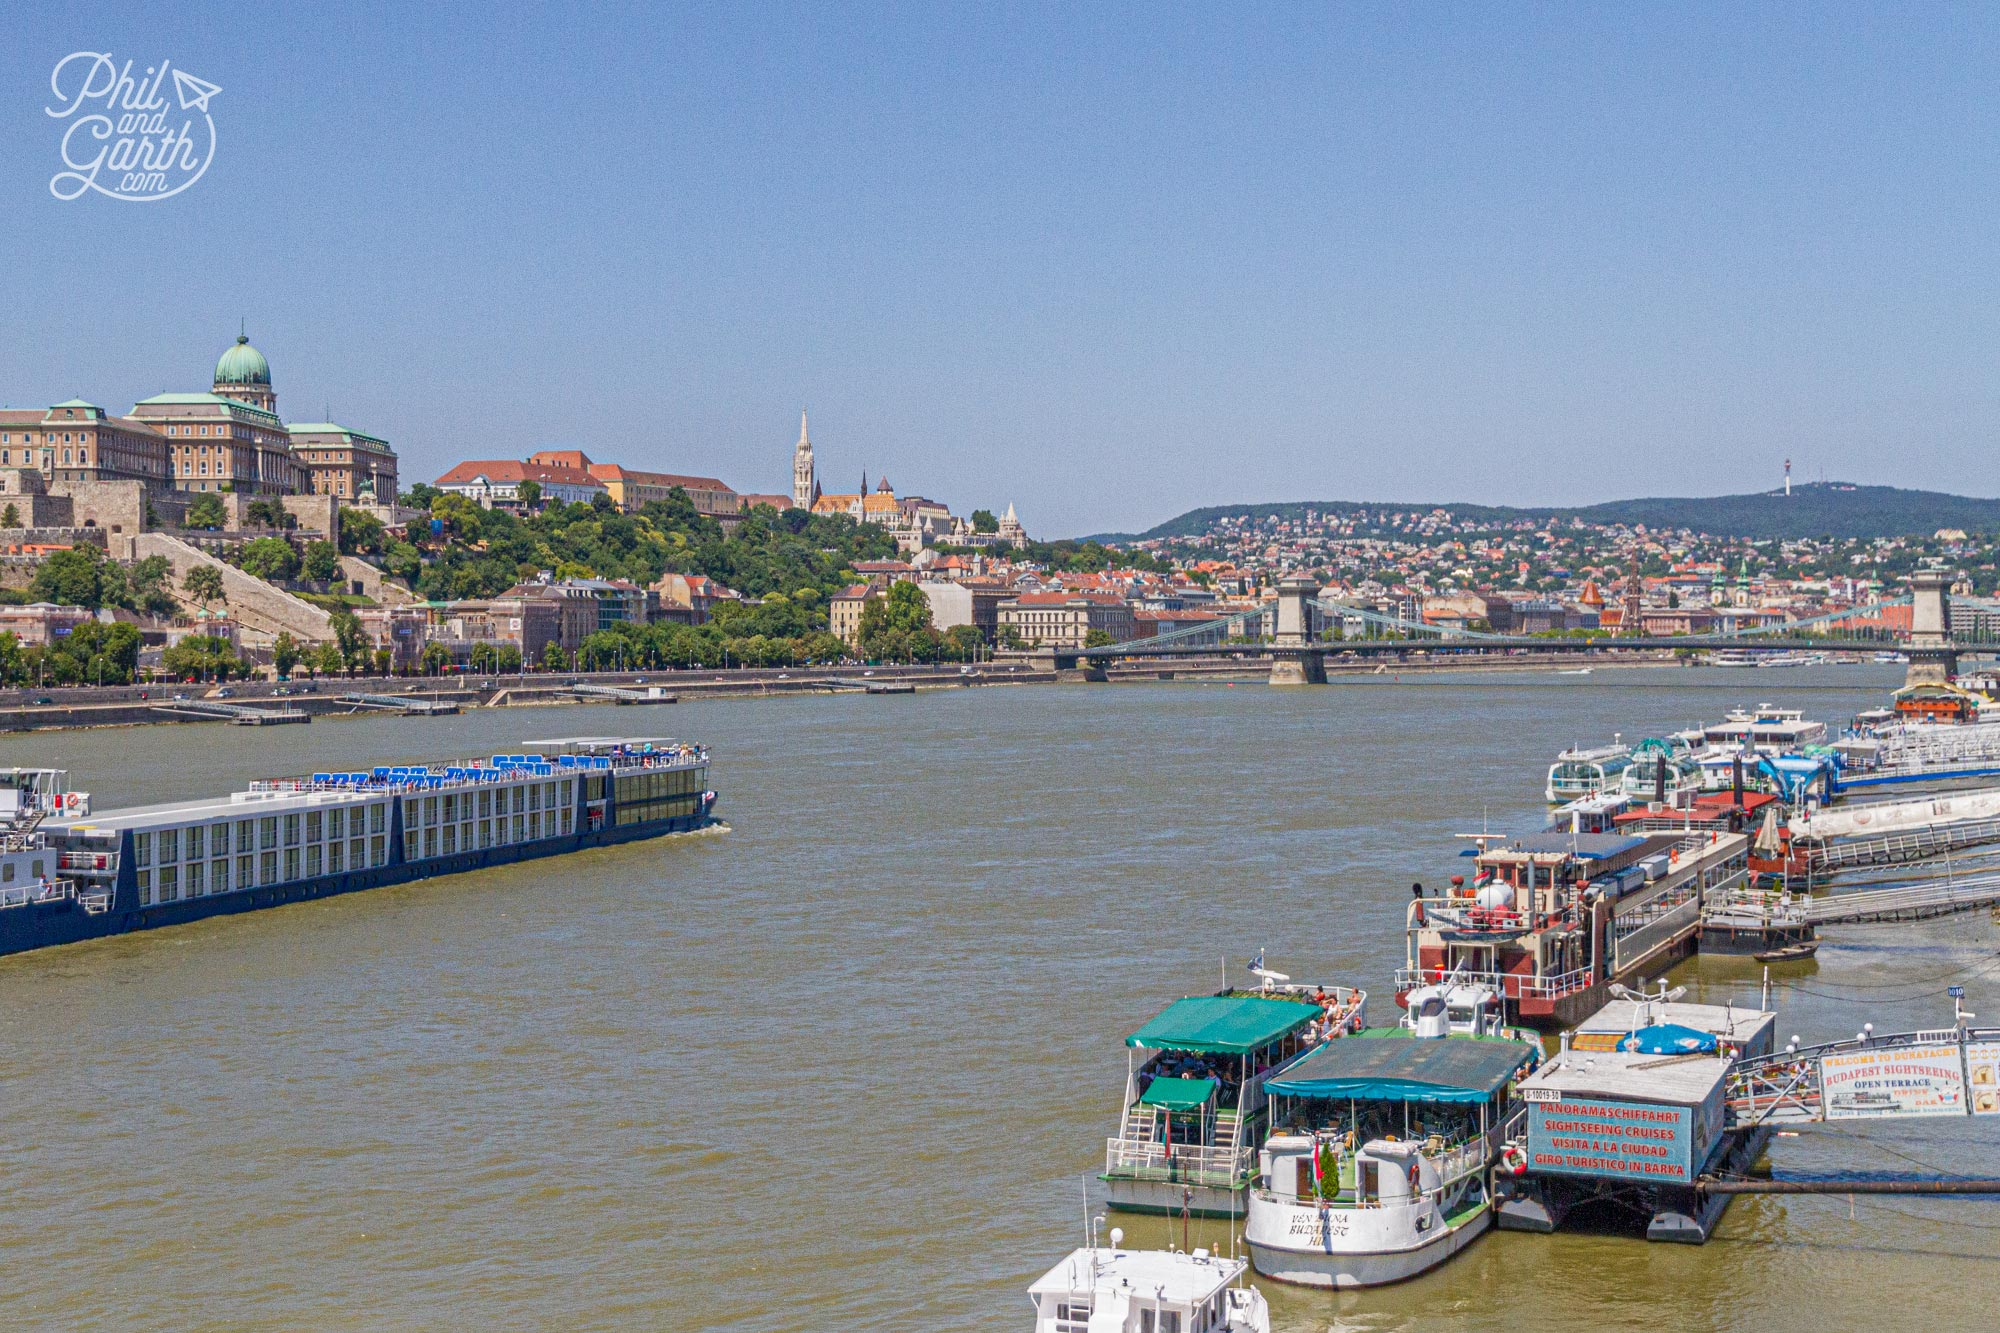 Theres lots of sightseeing river cruises to choose from